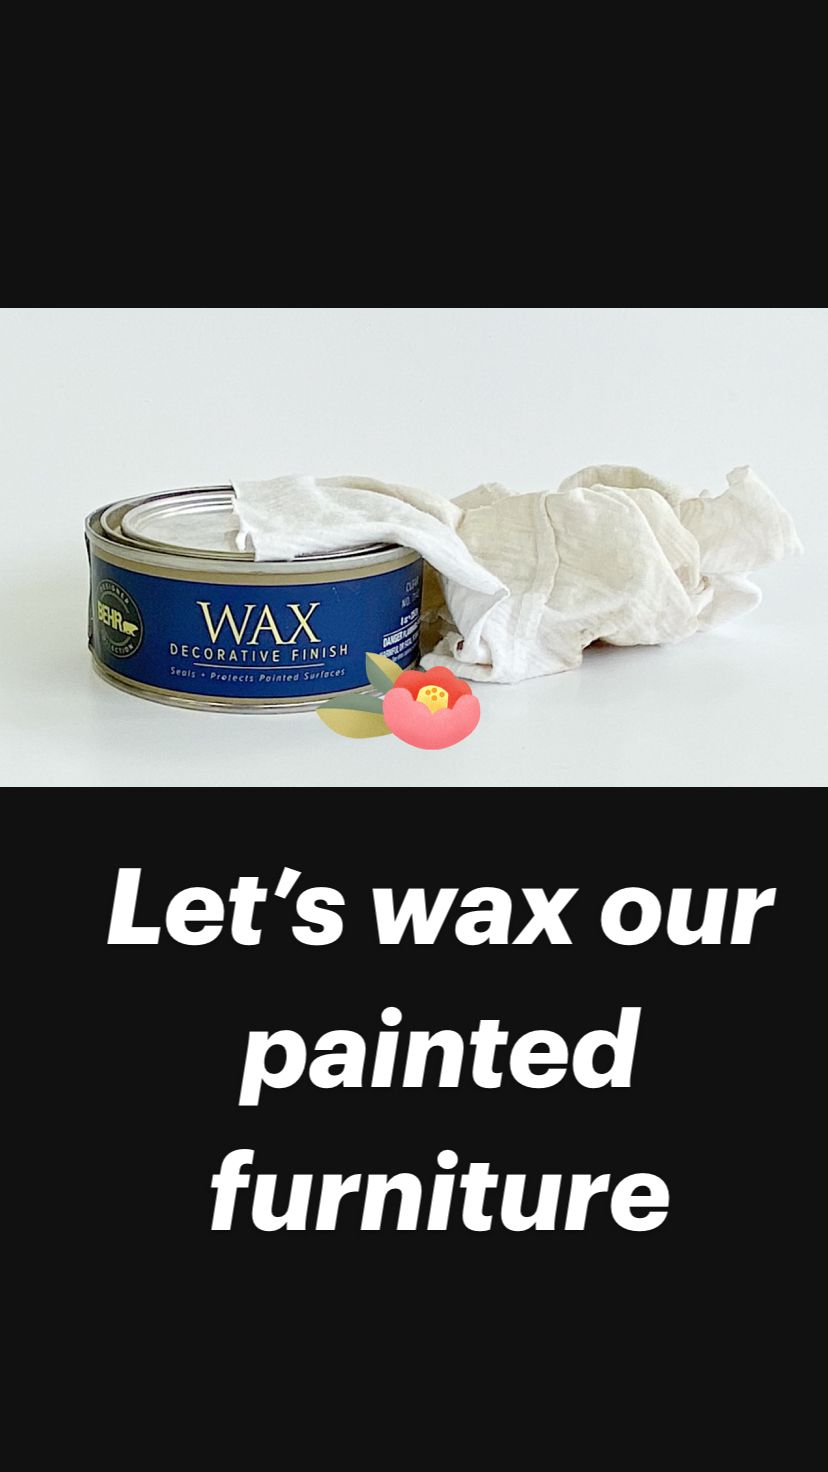 Let's wax our painted furniture